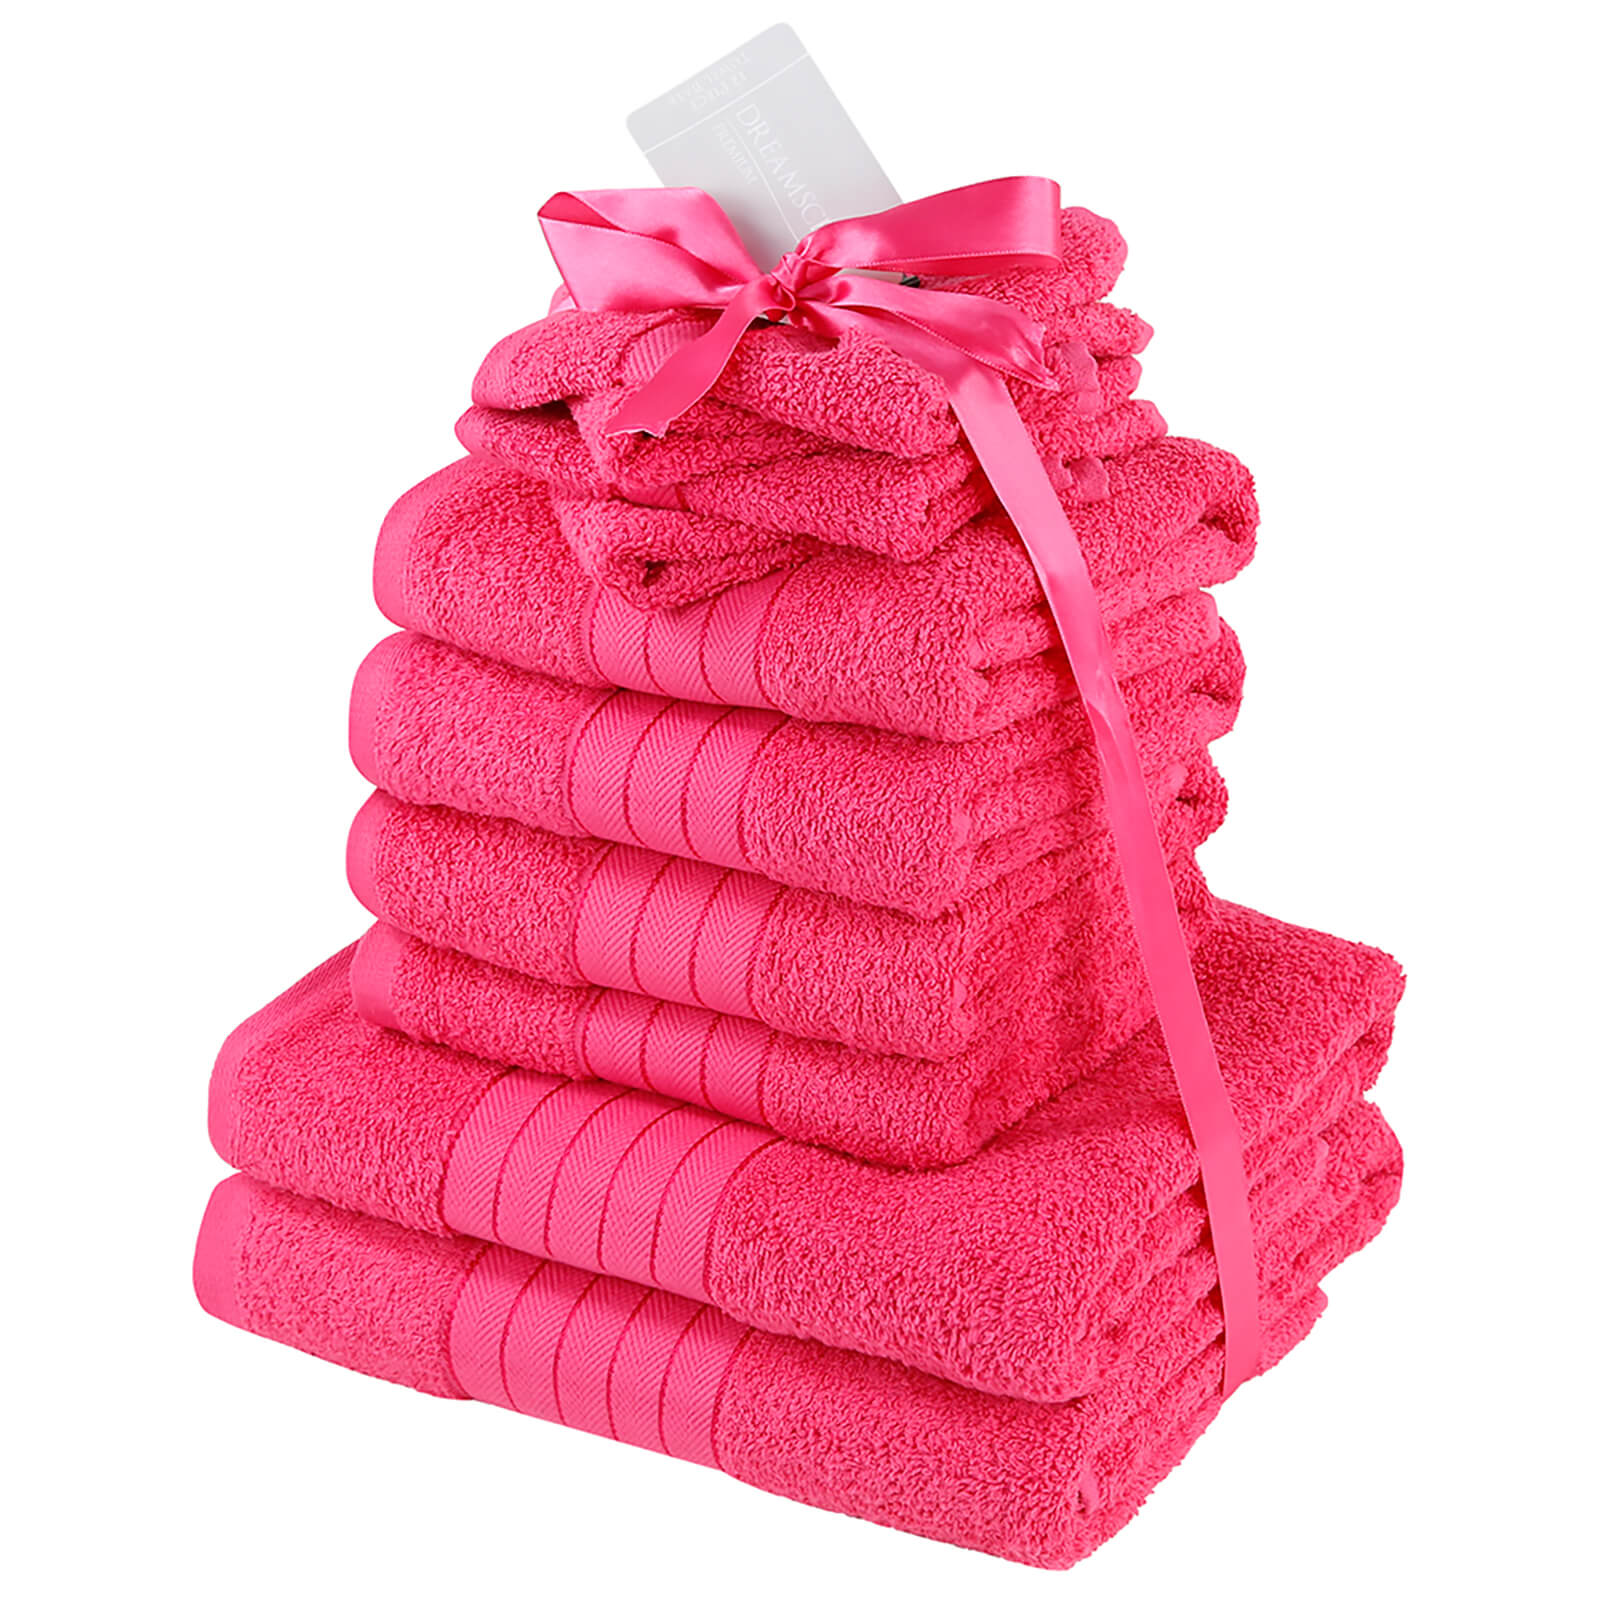 Highams 100% Cotton 10 Piece Towel Bale (500GSM) - Fuchsia